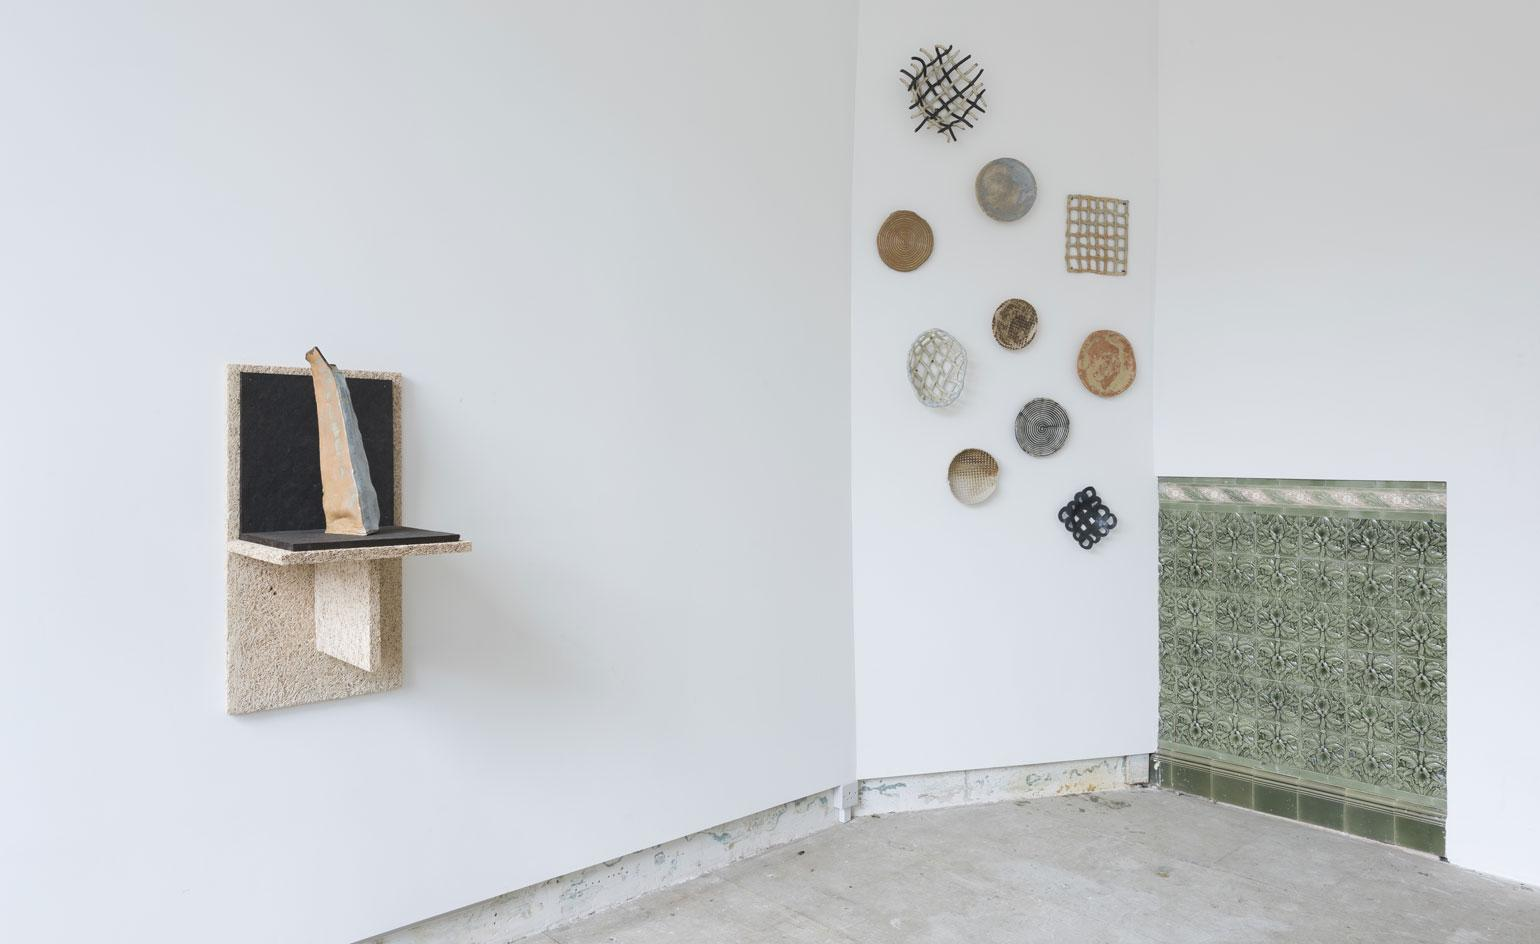 Martino Gamper and friends collaborate on ceramics that are anything but ordinary